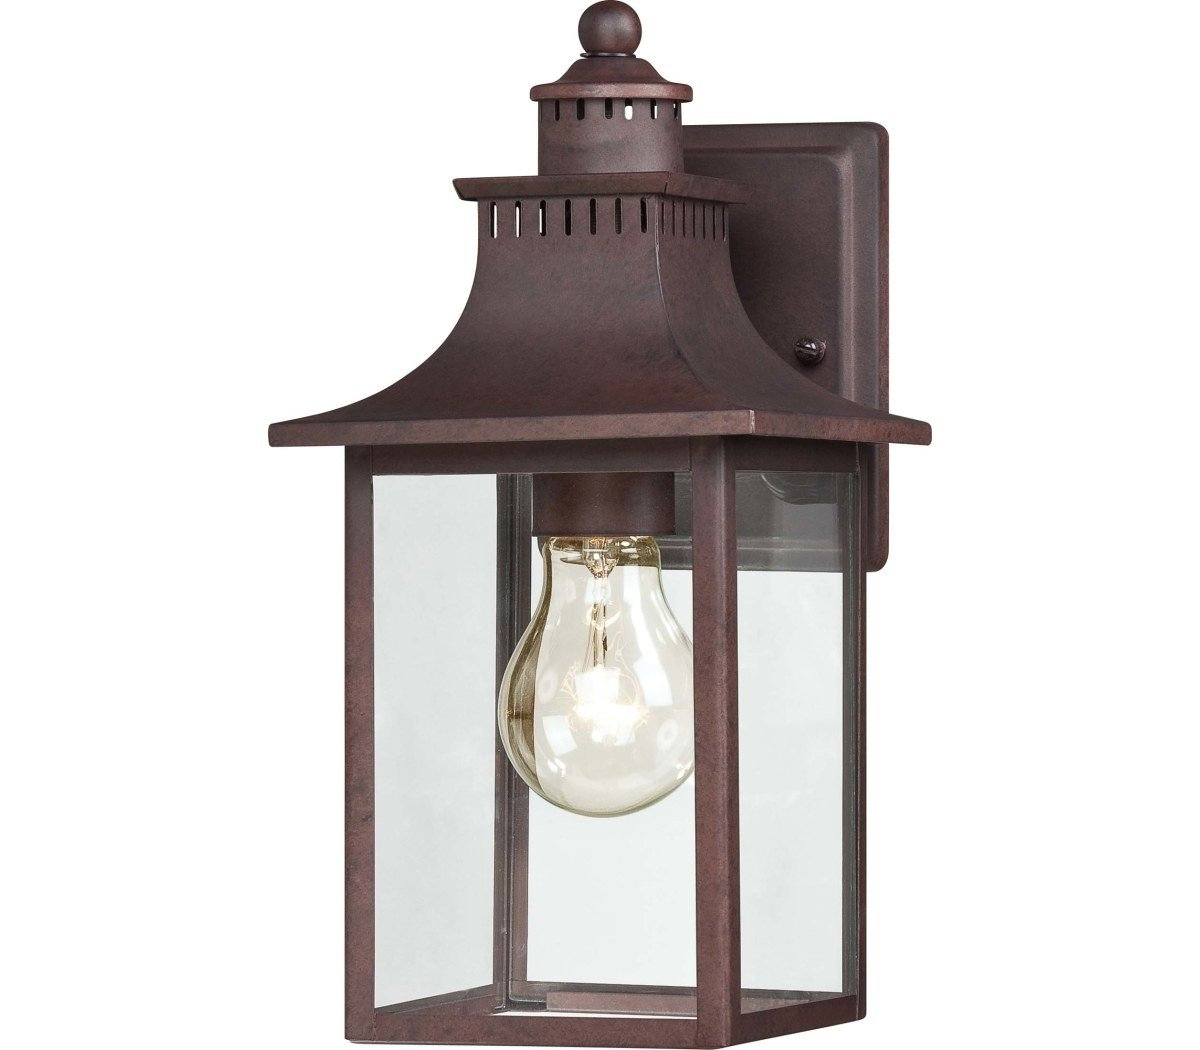 quoizel lighting chancellor quoizel-chancellor-outdoor-sconce